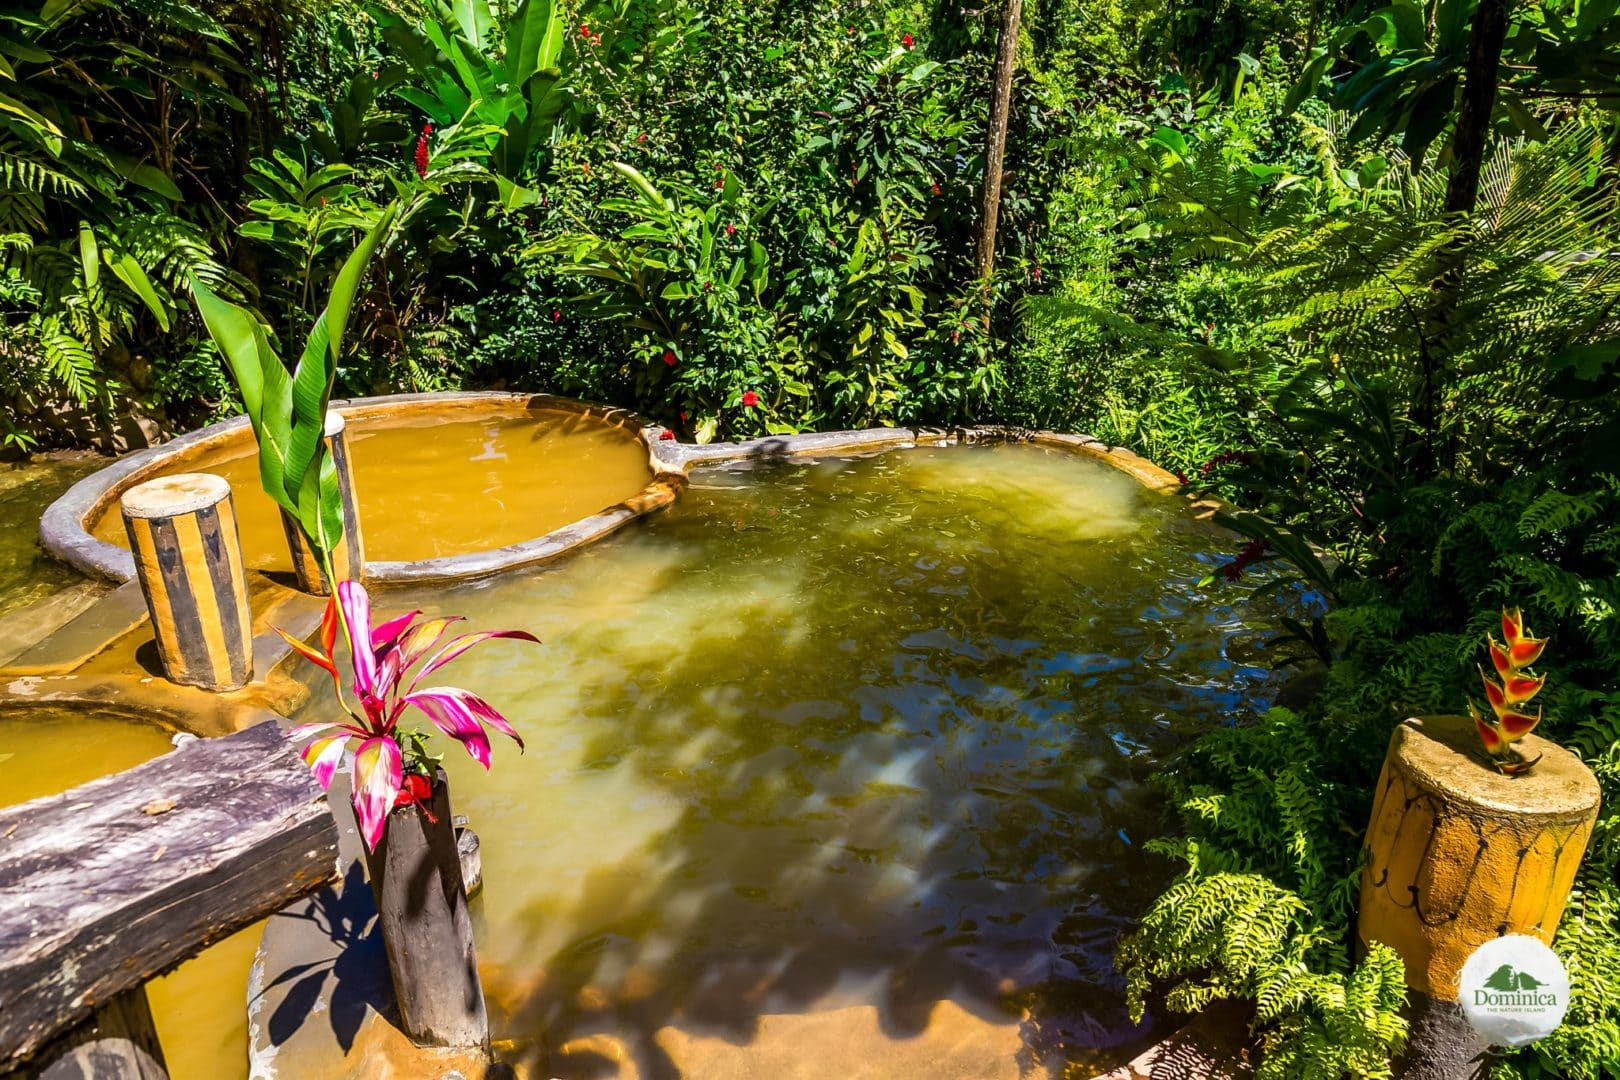 Bongo Baths Wotten Waven Dominica introduces the natural landscape Dominica, the Nature Island in Caribbean